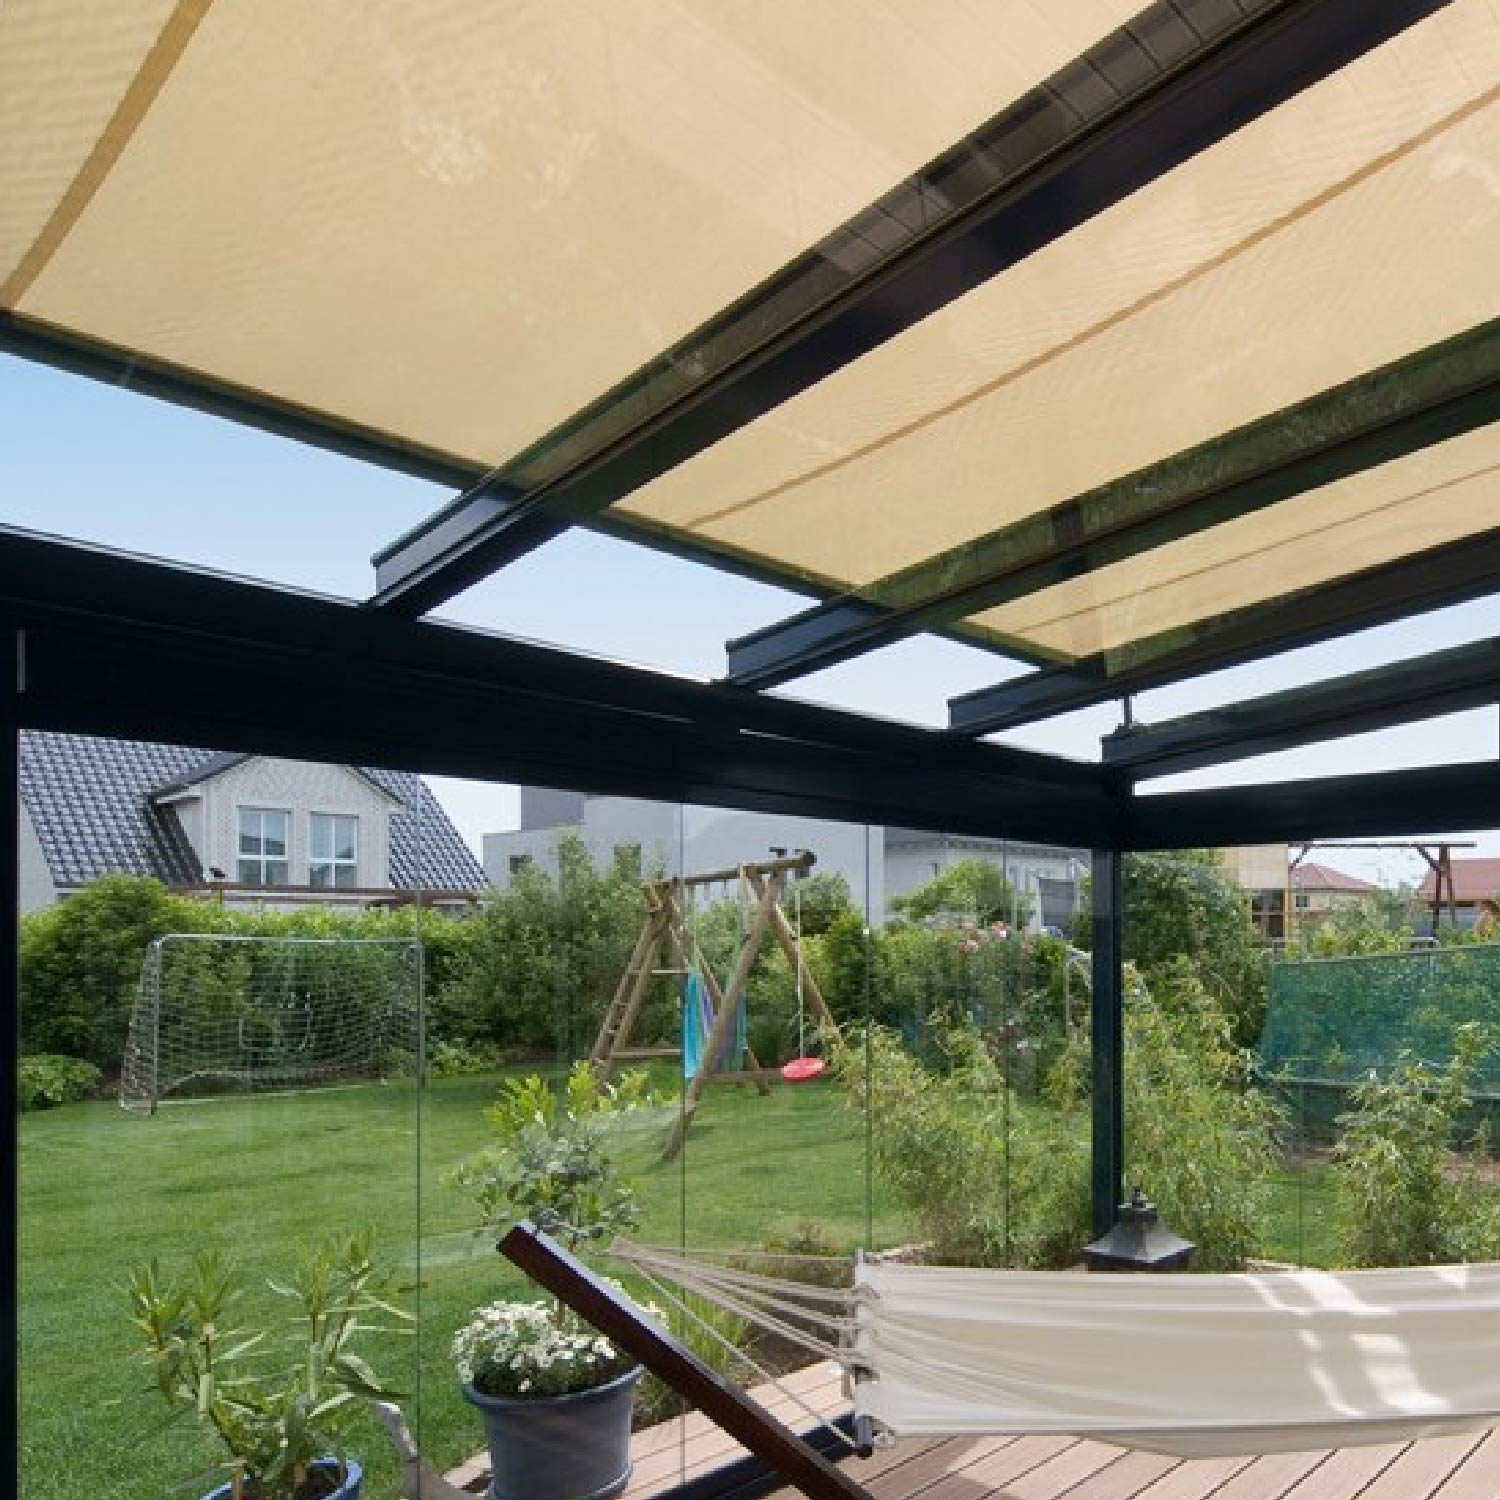 Conservatory Roof Awnings - The over roof conservatory awning provides a pleasantly shaded place on your patio or in your conservatory where you will enjoy relaxing even on extremely sunny days. The over roof conservatory awning can be combined with almost any untrussed roof virtually regardless of the structural conditions and is therefore a real enrichment for your haven of well-being.The over roof conservatory awning from weinor provides reliable sun  and glare protection – the space under your conservatory roof heats up far less as the sun doesn't directly hit the roof.Fits on almost any patio or conservatory roofRegardless of whether it's a weinor Glasoase® or warm conservatory, wooden patio roof or one with roof overhang – the over roof conservatory can be combined with almost any patio or conservatory roof, even later on as a retro fit.Impressive designThe slimline profile without any visible fixings highlight the over roof conservatory awning's modern design. It integrates perfectly into the overall look of the house facade as a stylish element.